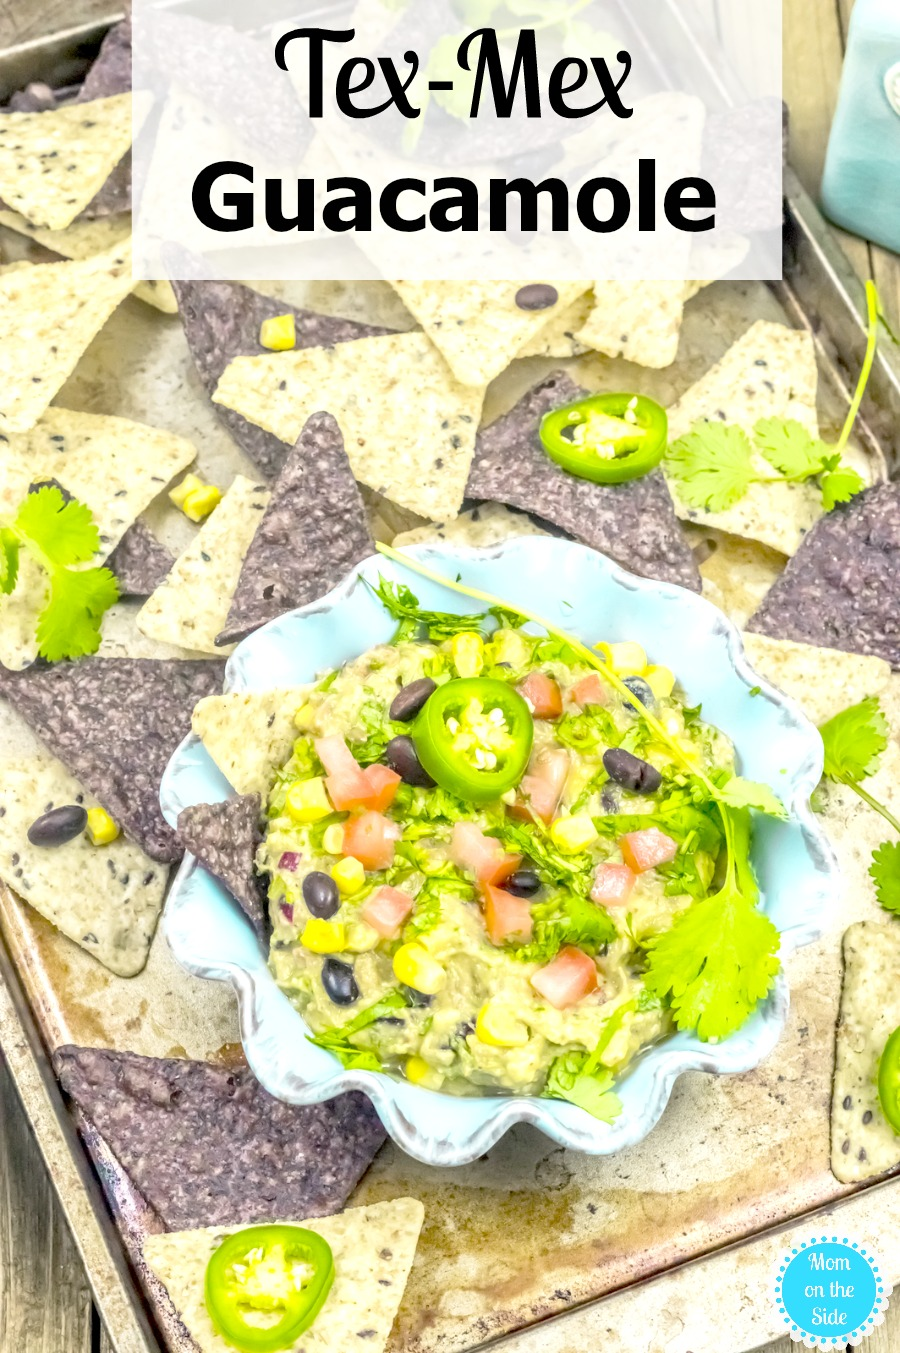 This delicious Tex-Mex Guacamole recipe is easy to mix together with a kick of a taste. Pair with tortilla or pita chips for your next party!